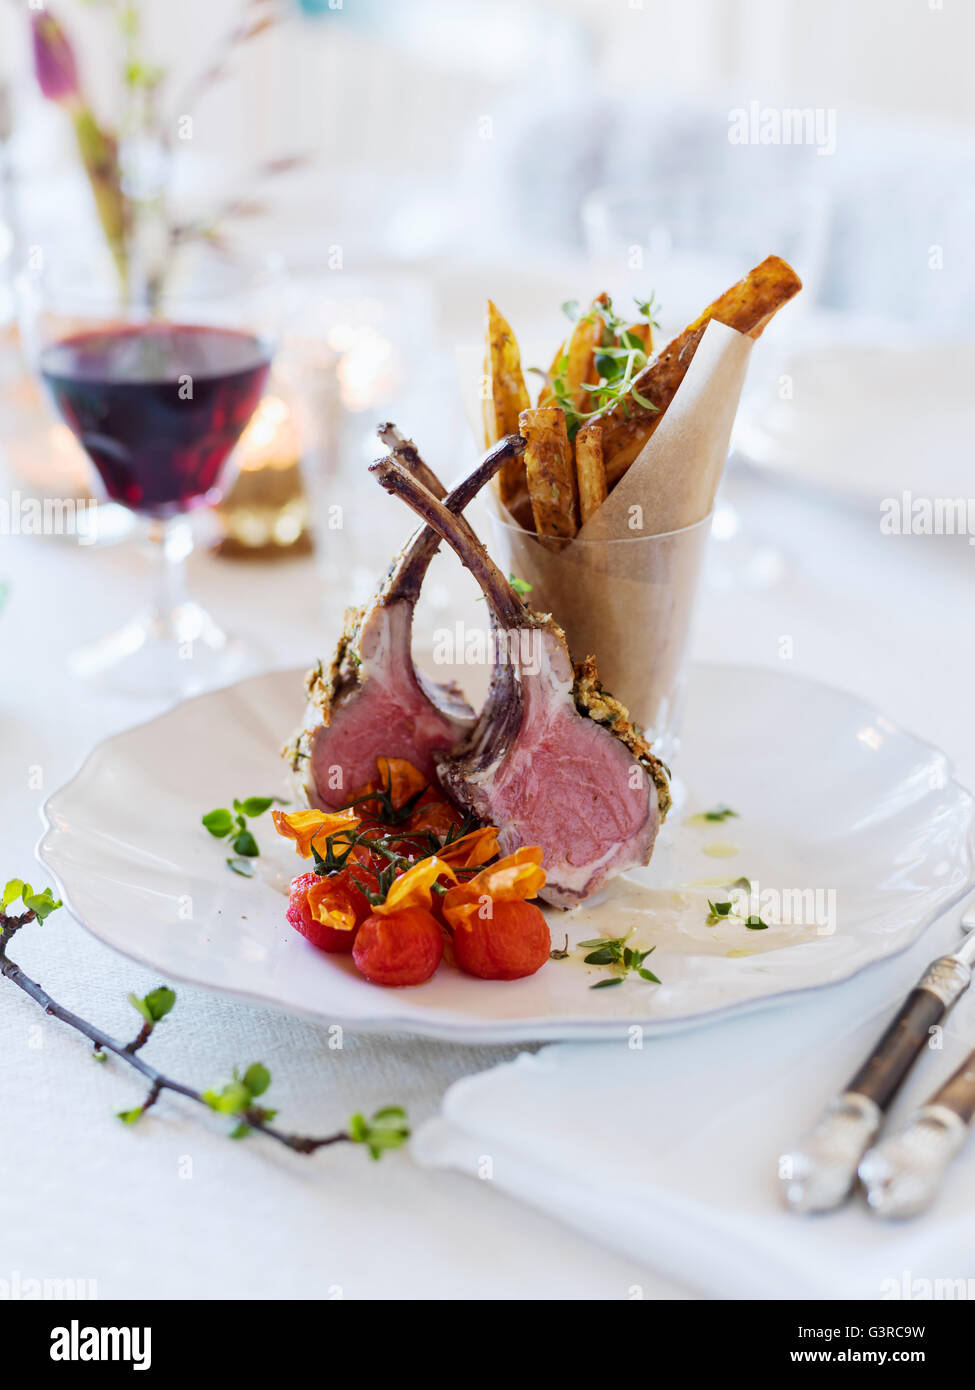 Sweden, Lamb chops and french fries on table - Stock Image